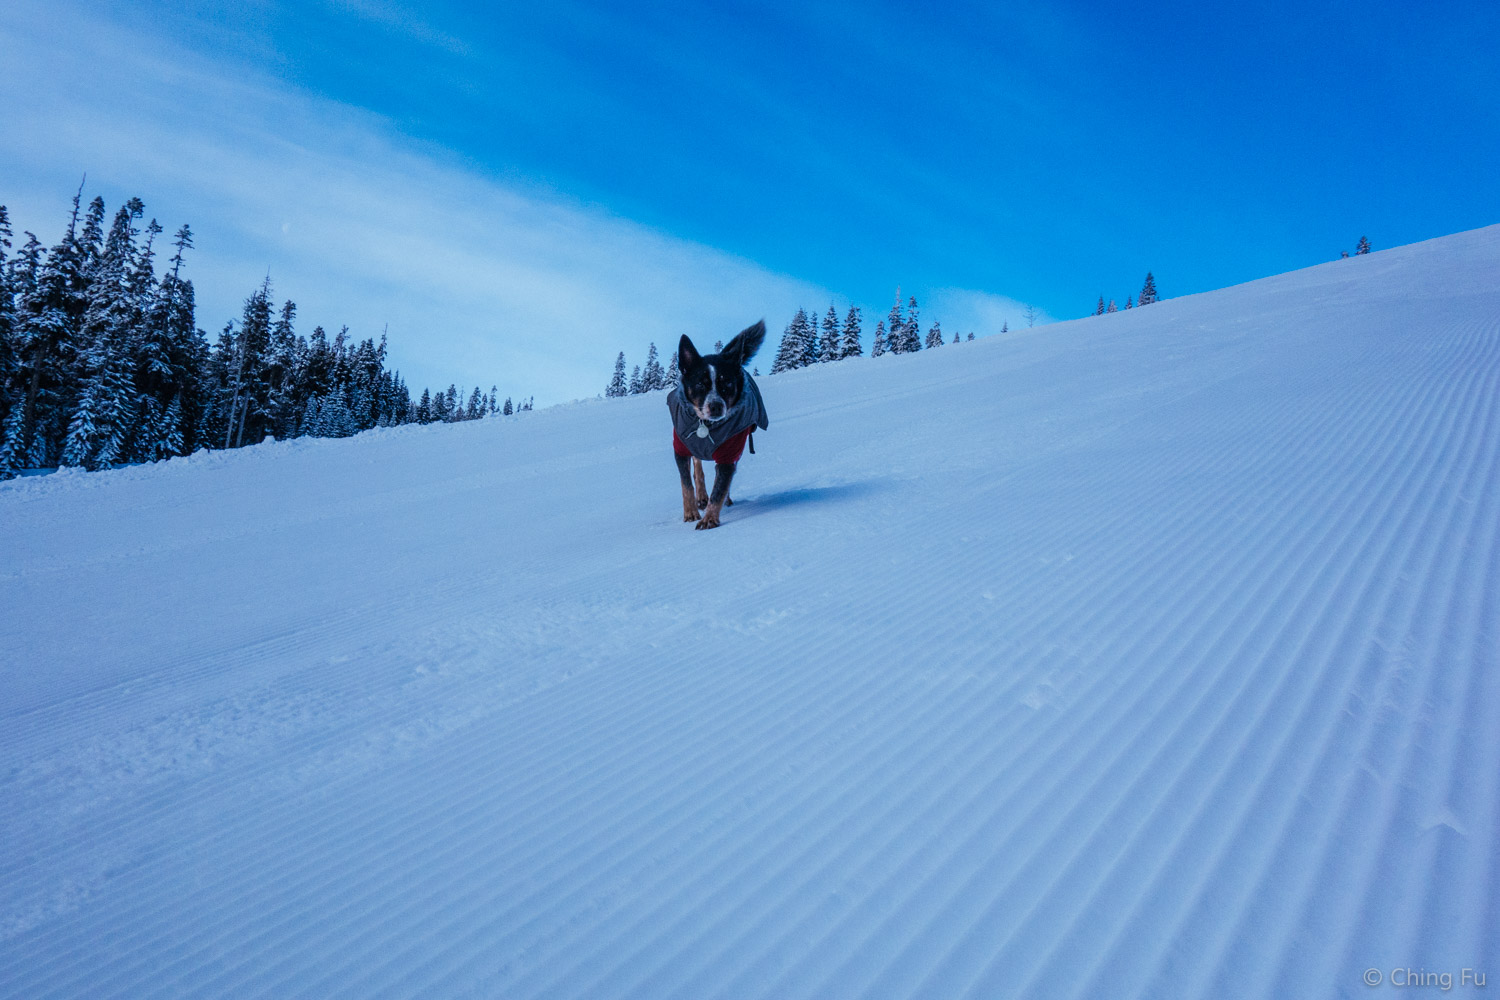 Tyki coming down Crystal Mountain Resort trails.